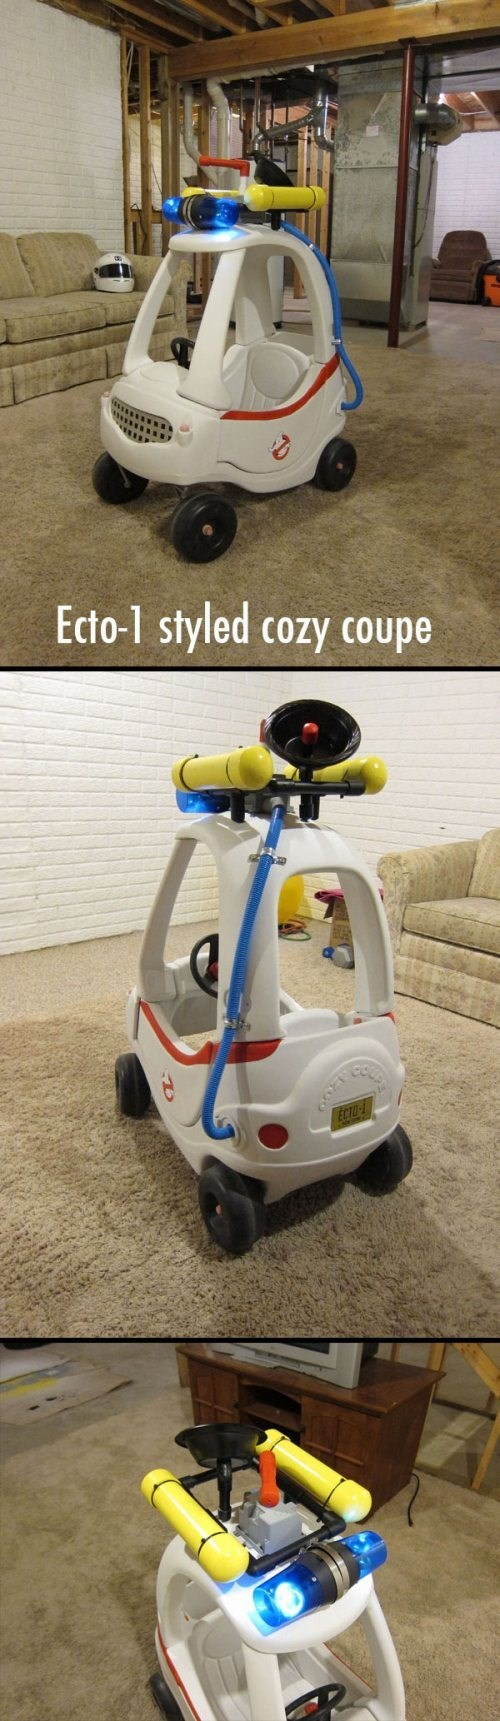 cozy coupe,toys,kids,Ghostbusters,parenting,ecto-1